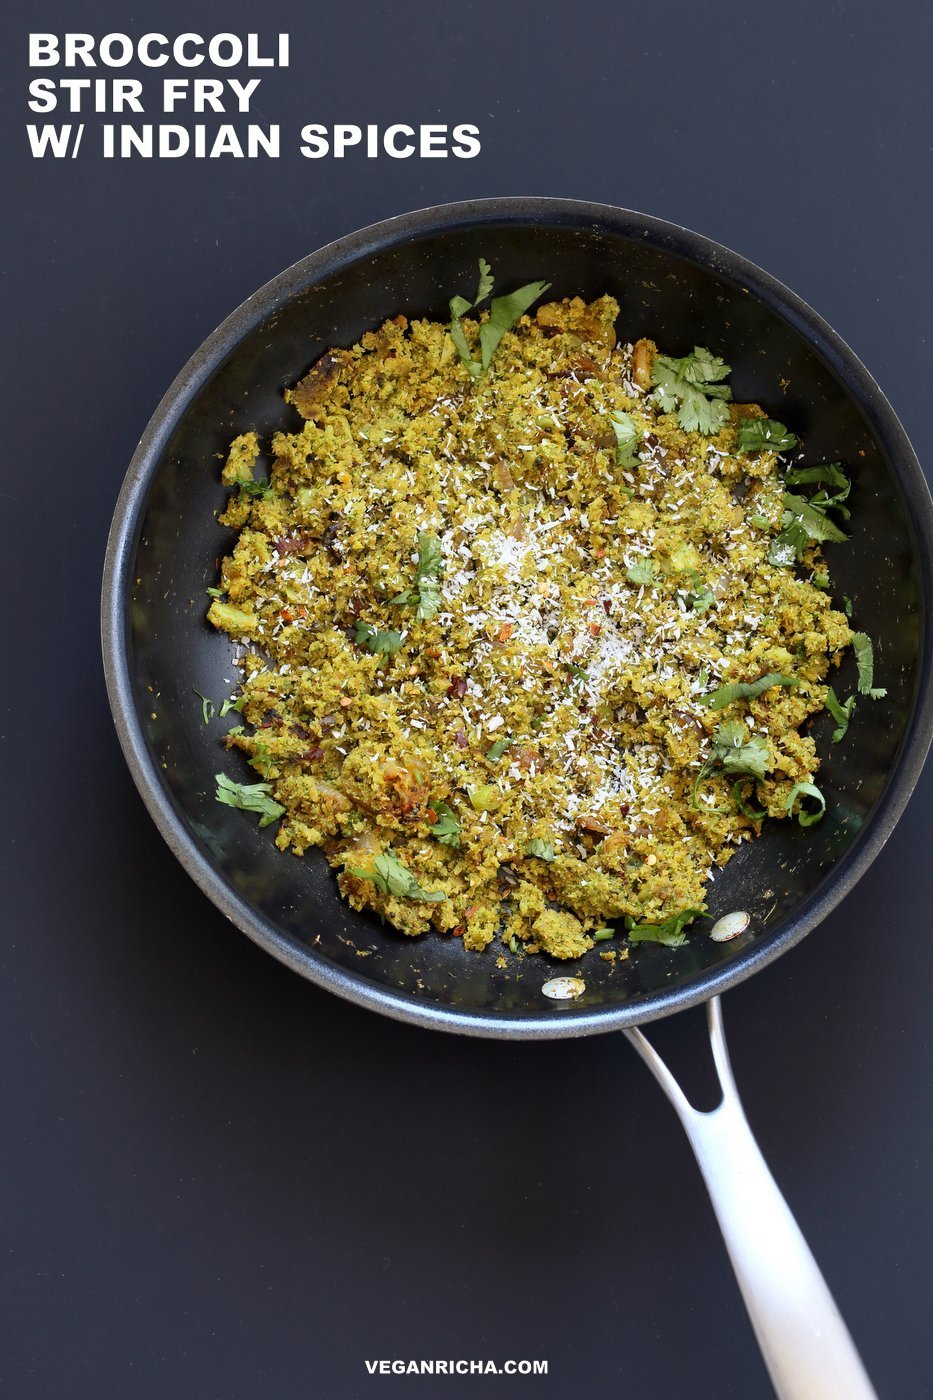 Broccoli Stir fry with Indian Spices - Broccoli Sabji with mustard seeds, coriander, fenugreek, turmeric and cinnamon. 1 pot, 20 mins. #Vegan #Glutenfree #Soyfree #Broccoli #Recipe. Serve as a side, or with dal, or fill up a taco or wrap. | VeganRicha.com